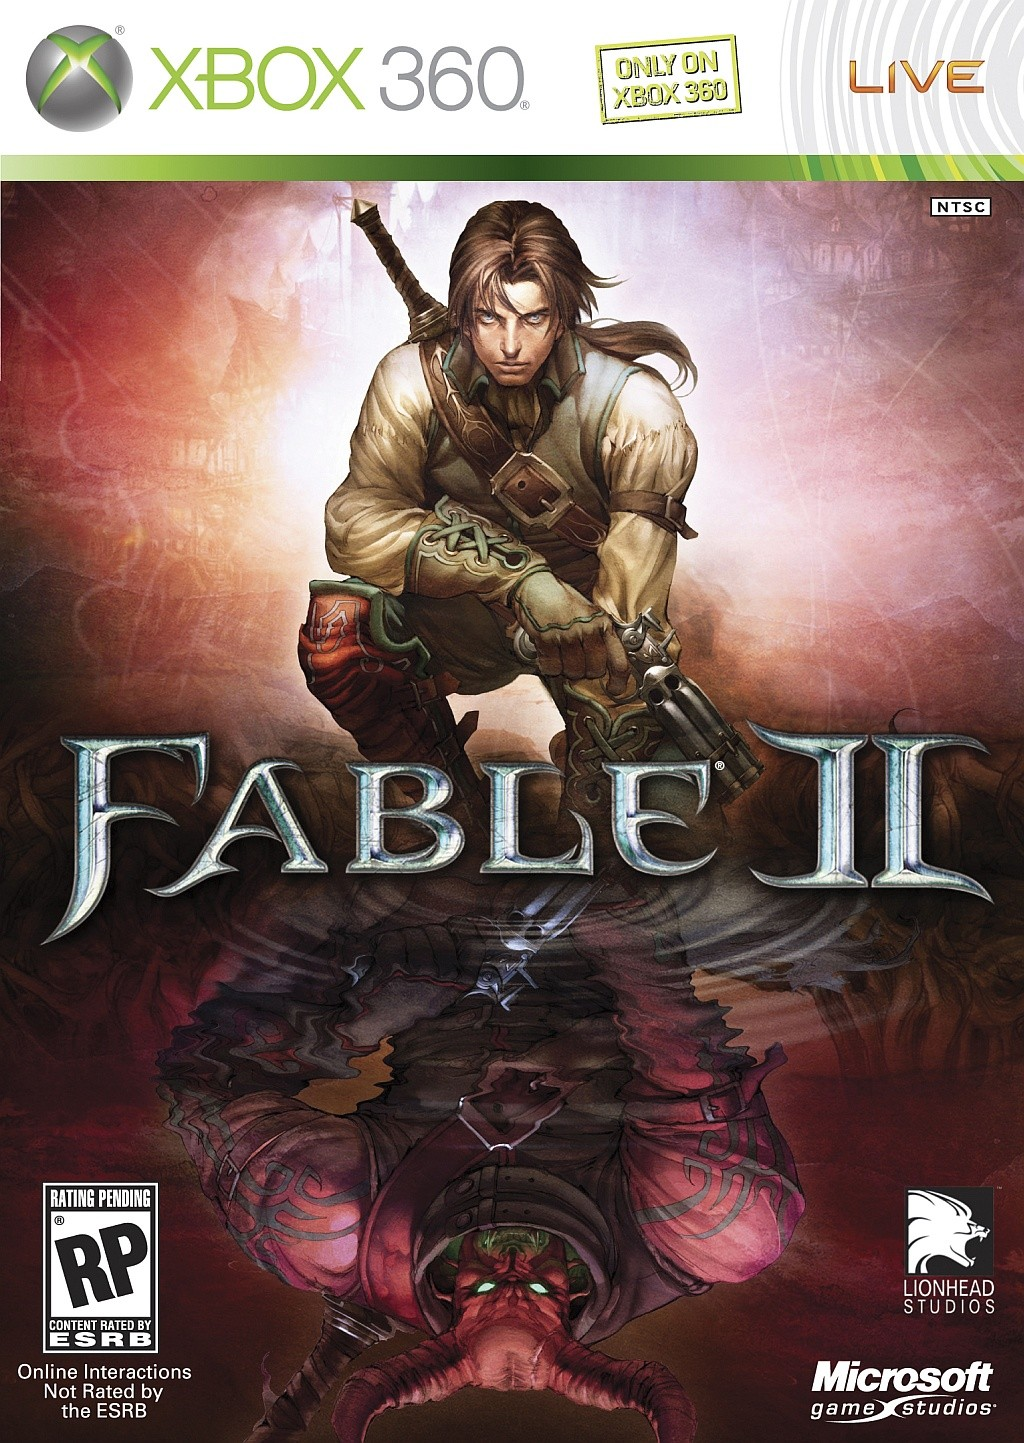 fable xbox 360: